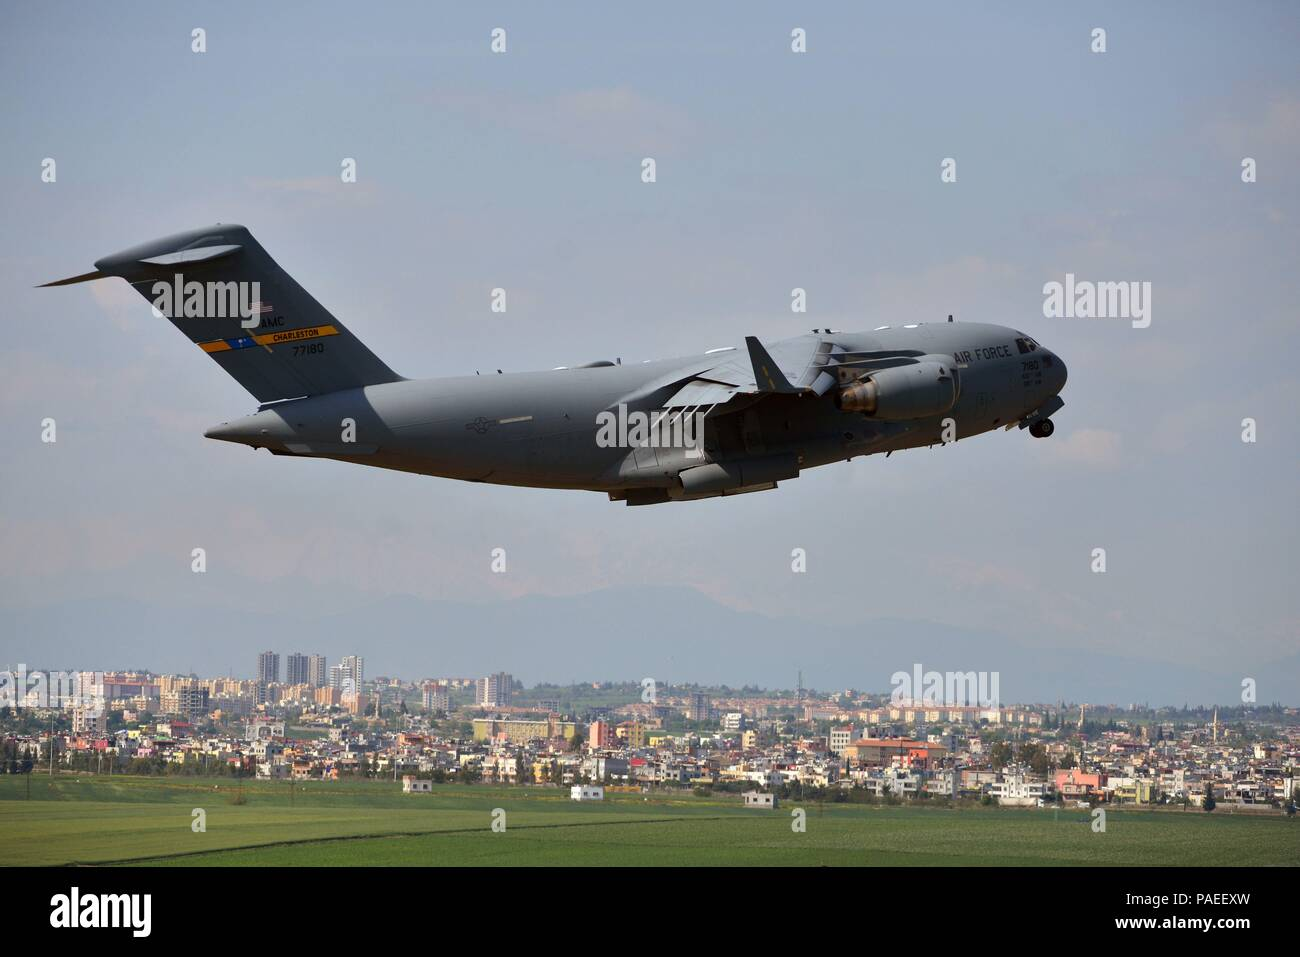 The first C-17 Globemaster III with families of U.S. Airmen and Department of Defense civilians takes off from Incirlik Air Base, Turkey, March 30, 2016. On March 29, 2016, the Secretary of Defense, in coordination with the Secretary of State, ordered the departure of all Department of Defense dependents assigned to Incirlik Air Base. (U.S. Air Force photo by Senior Airman John Nieves Camacho/Released) - Stock Image